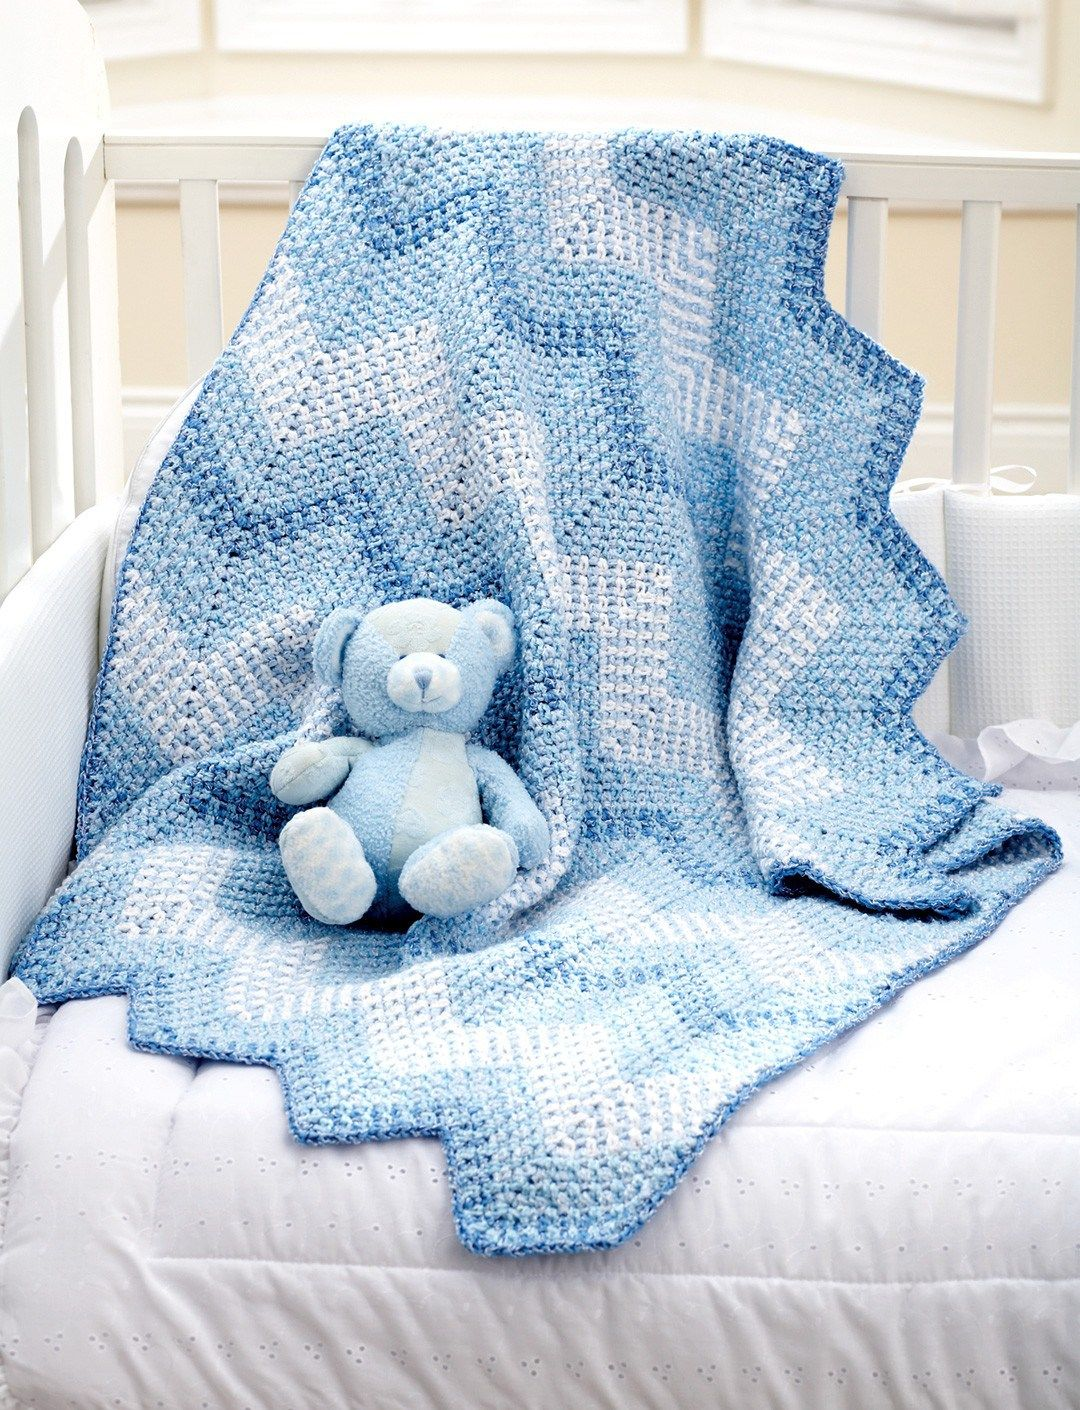 Crochet Baby Blankets for Boys | Crochet | Pinterest | Encajes de ...